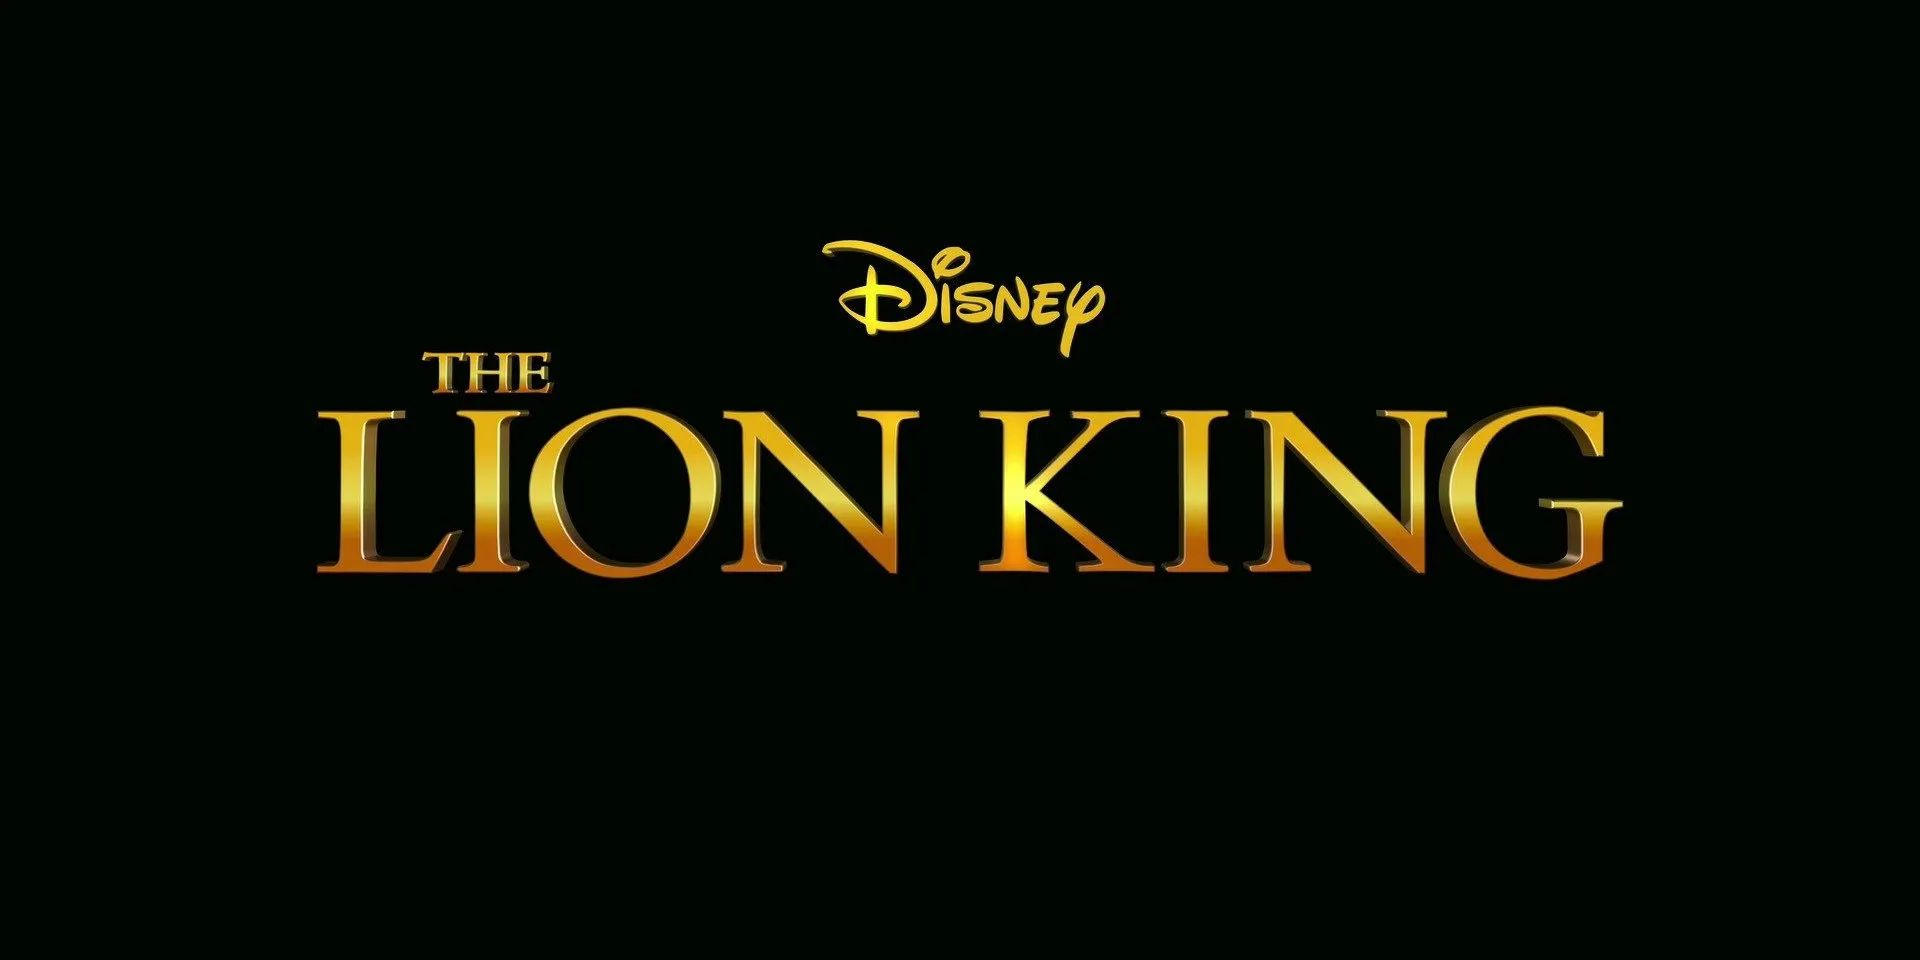 the lion king movie 2019 trailers 2017